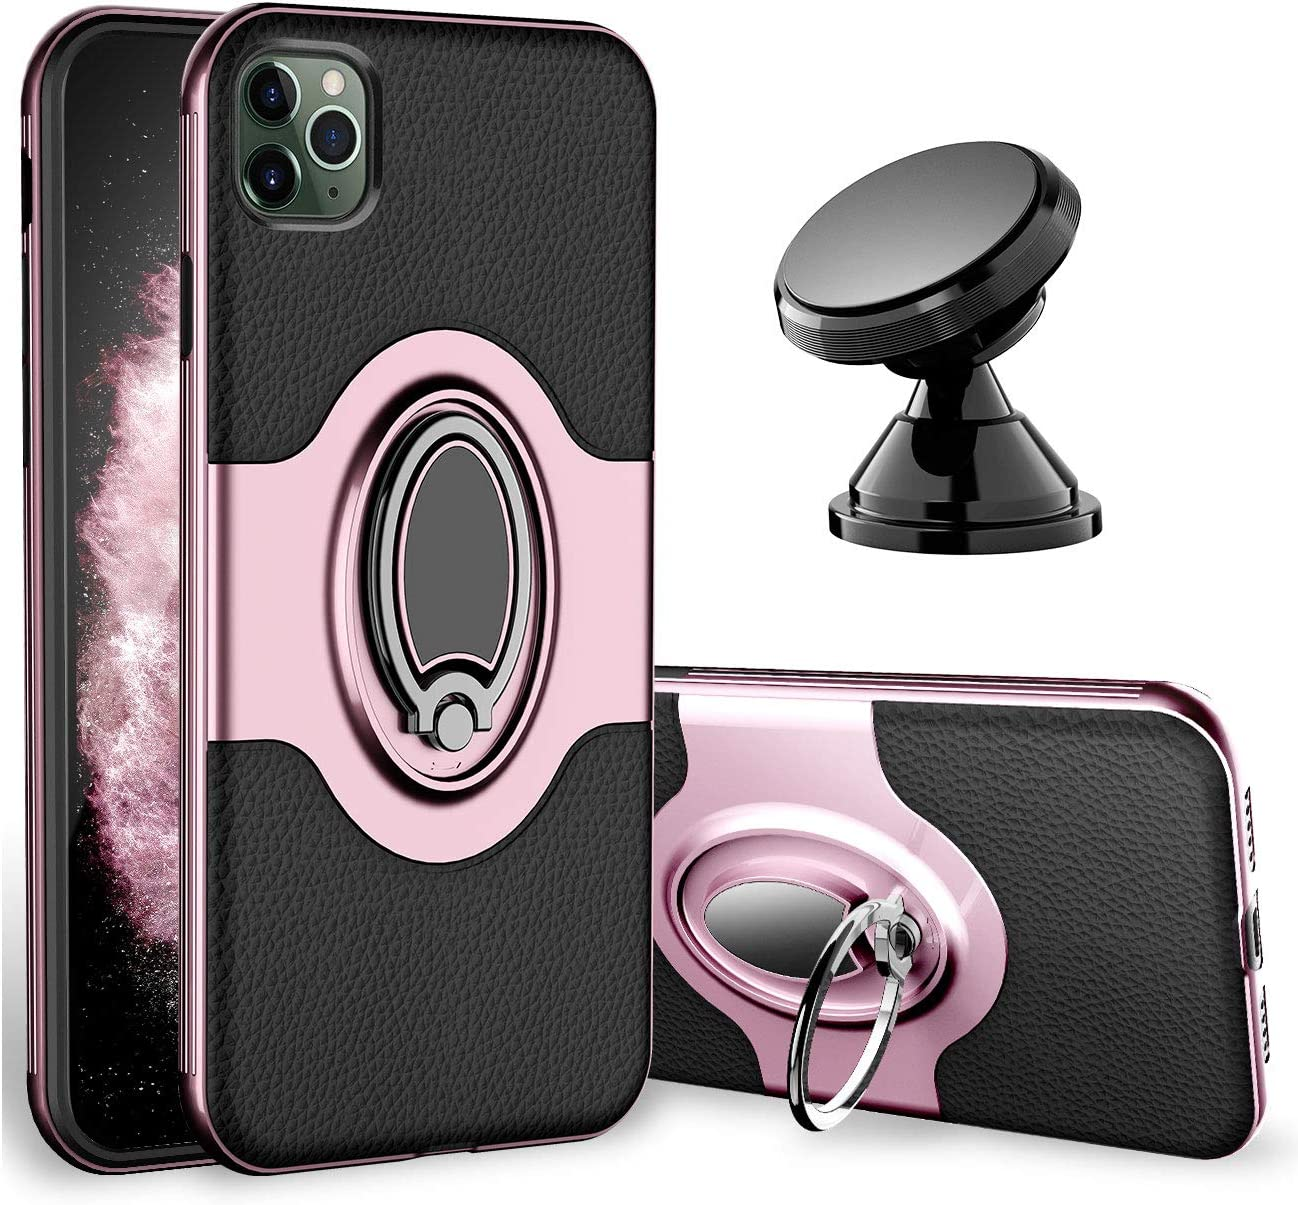 eSamcore iPhone 11 Pro Max Case - Ring Holder Kickstand Cell Phone Cases + Magnetic Phone Car Mount for Apple iPhone 11 Pro Max 6.5 Inch 2019 [Rose Gold]